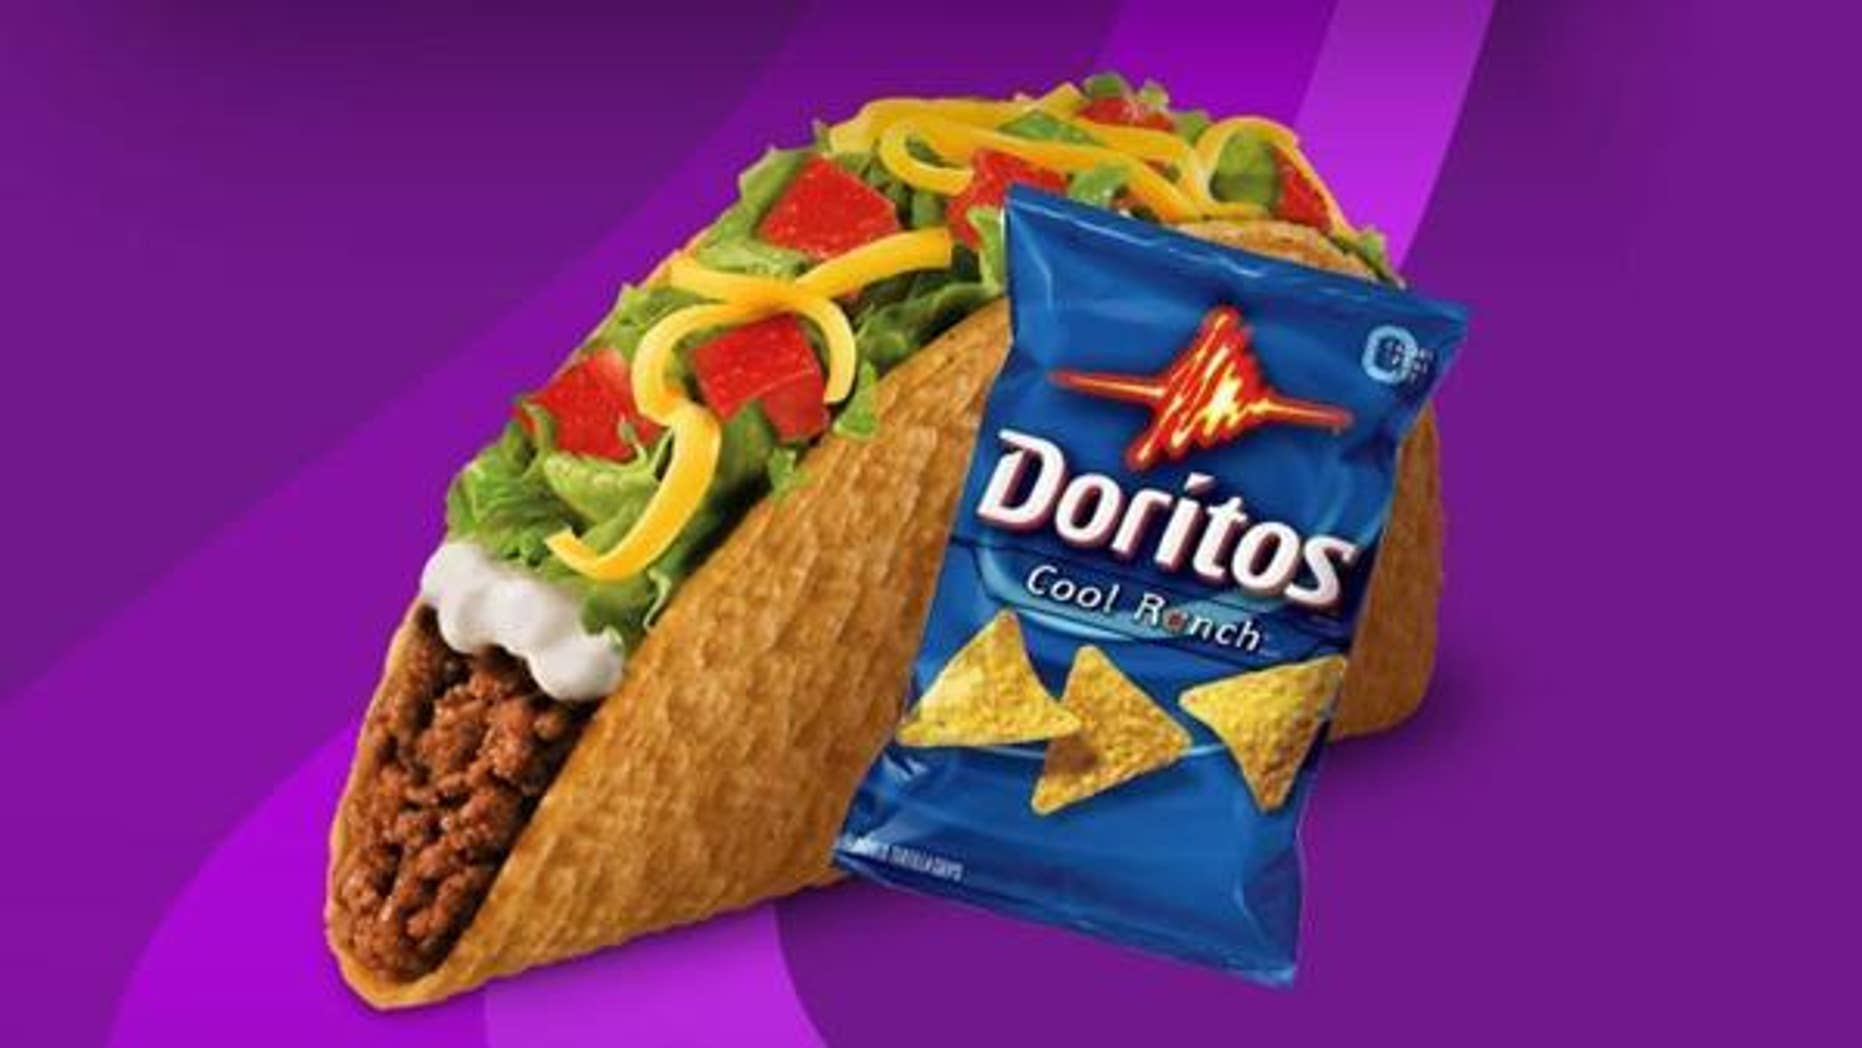 NBA fan? Everyone wins tacos if the away team is victorious.